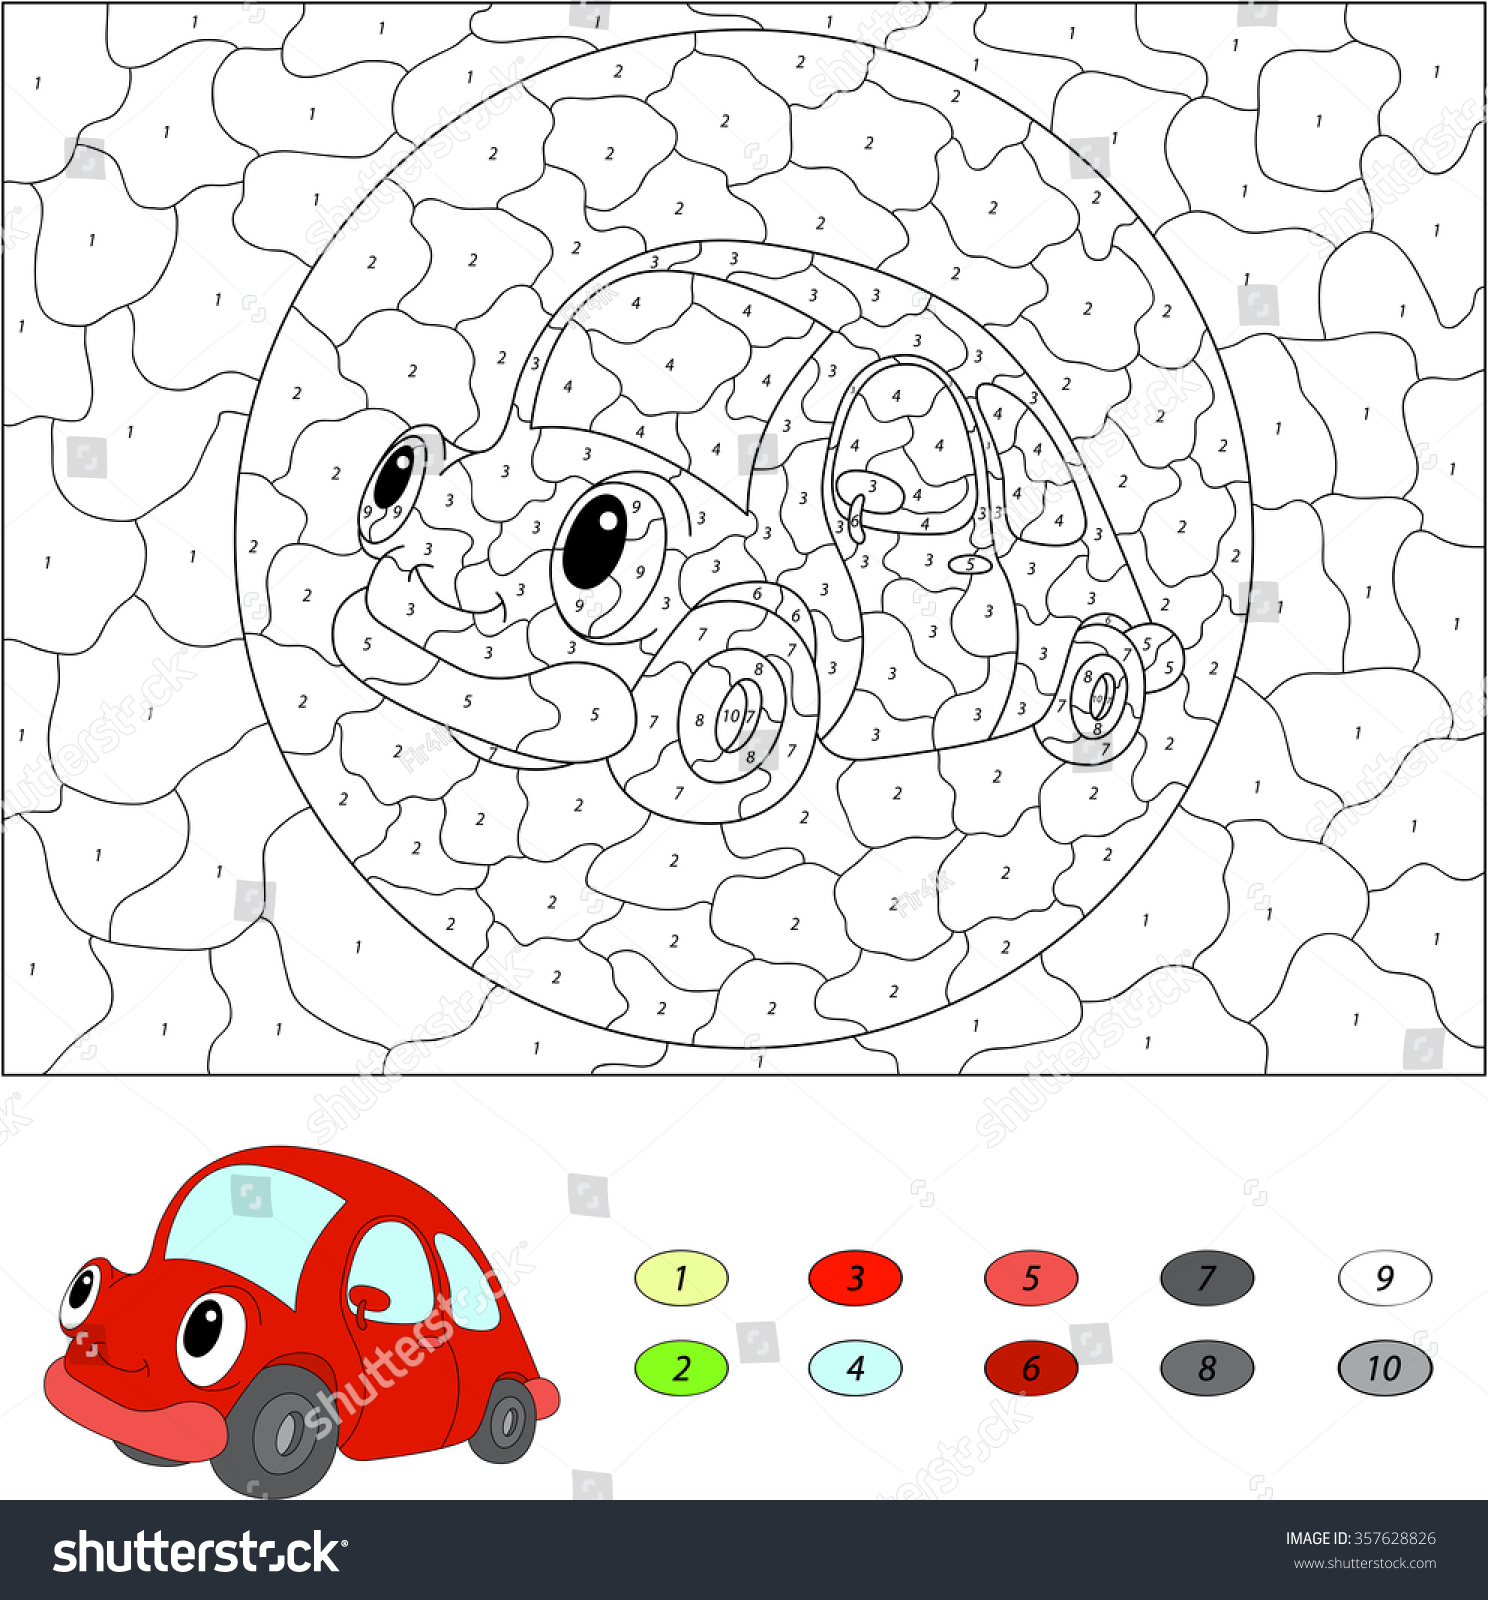 Color car number - Color By Number Educational Game For Kids Cartoon Red Car Vector Illustration For Schoolchild